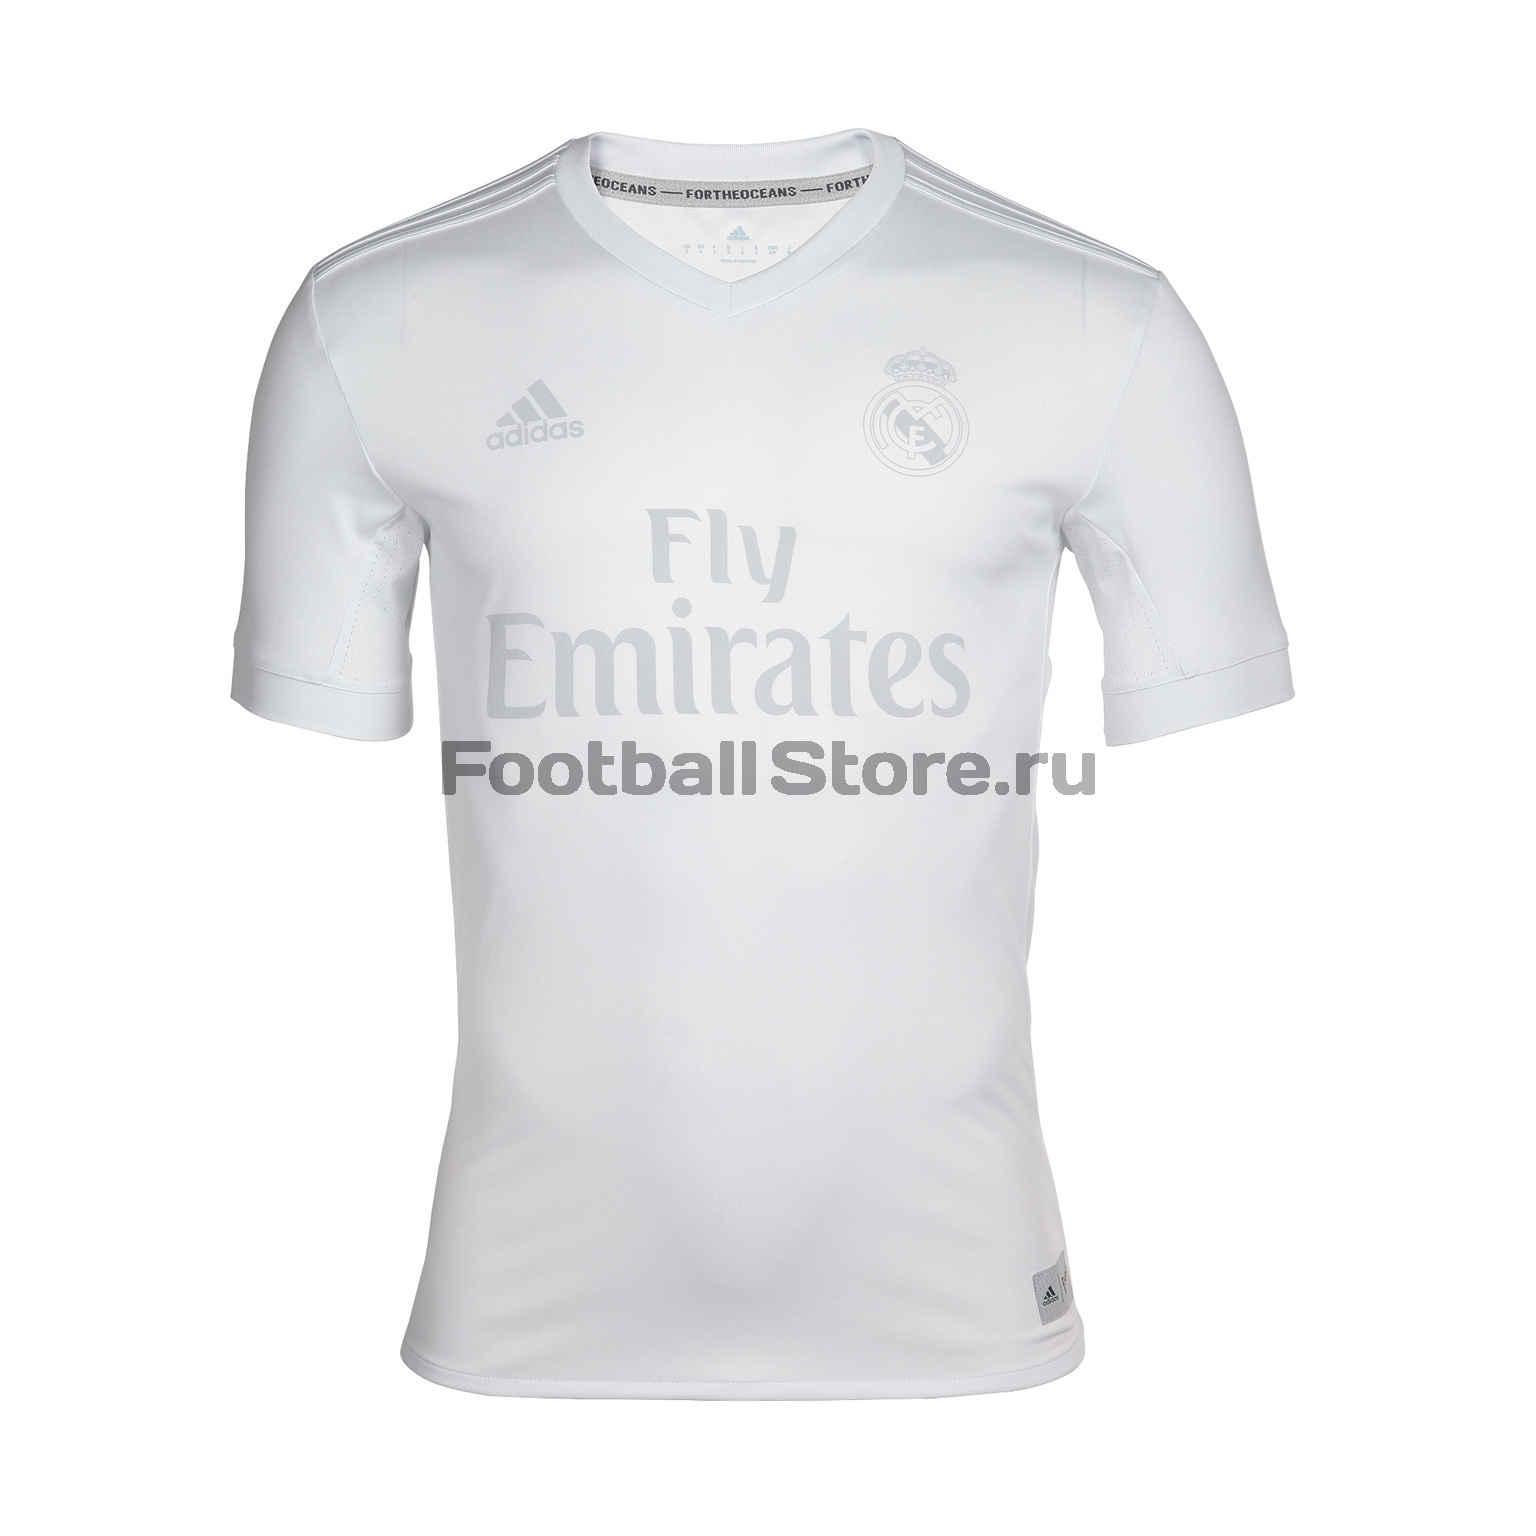 Real Madrid Adidas Футболка Adidas Real Madrid Parl JSY B48903 real madrid adidas свитер adidas real madrid euhybrid top bq7851